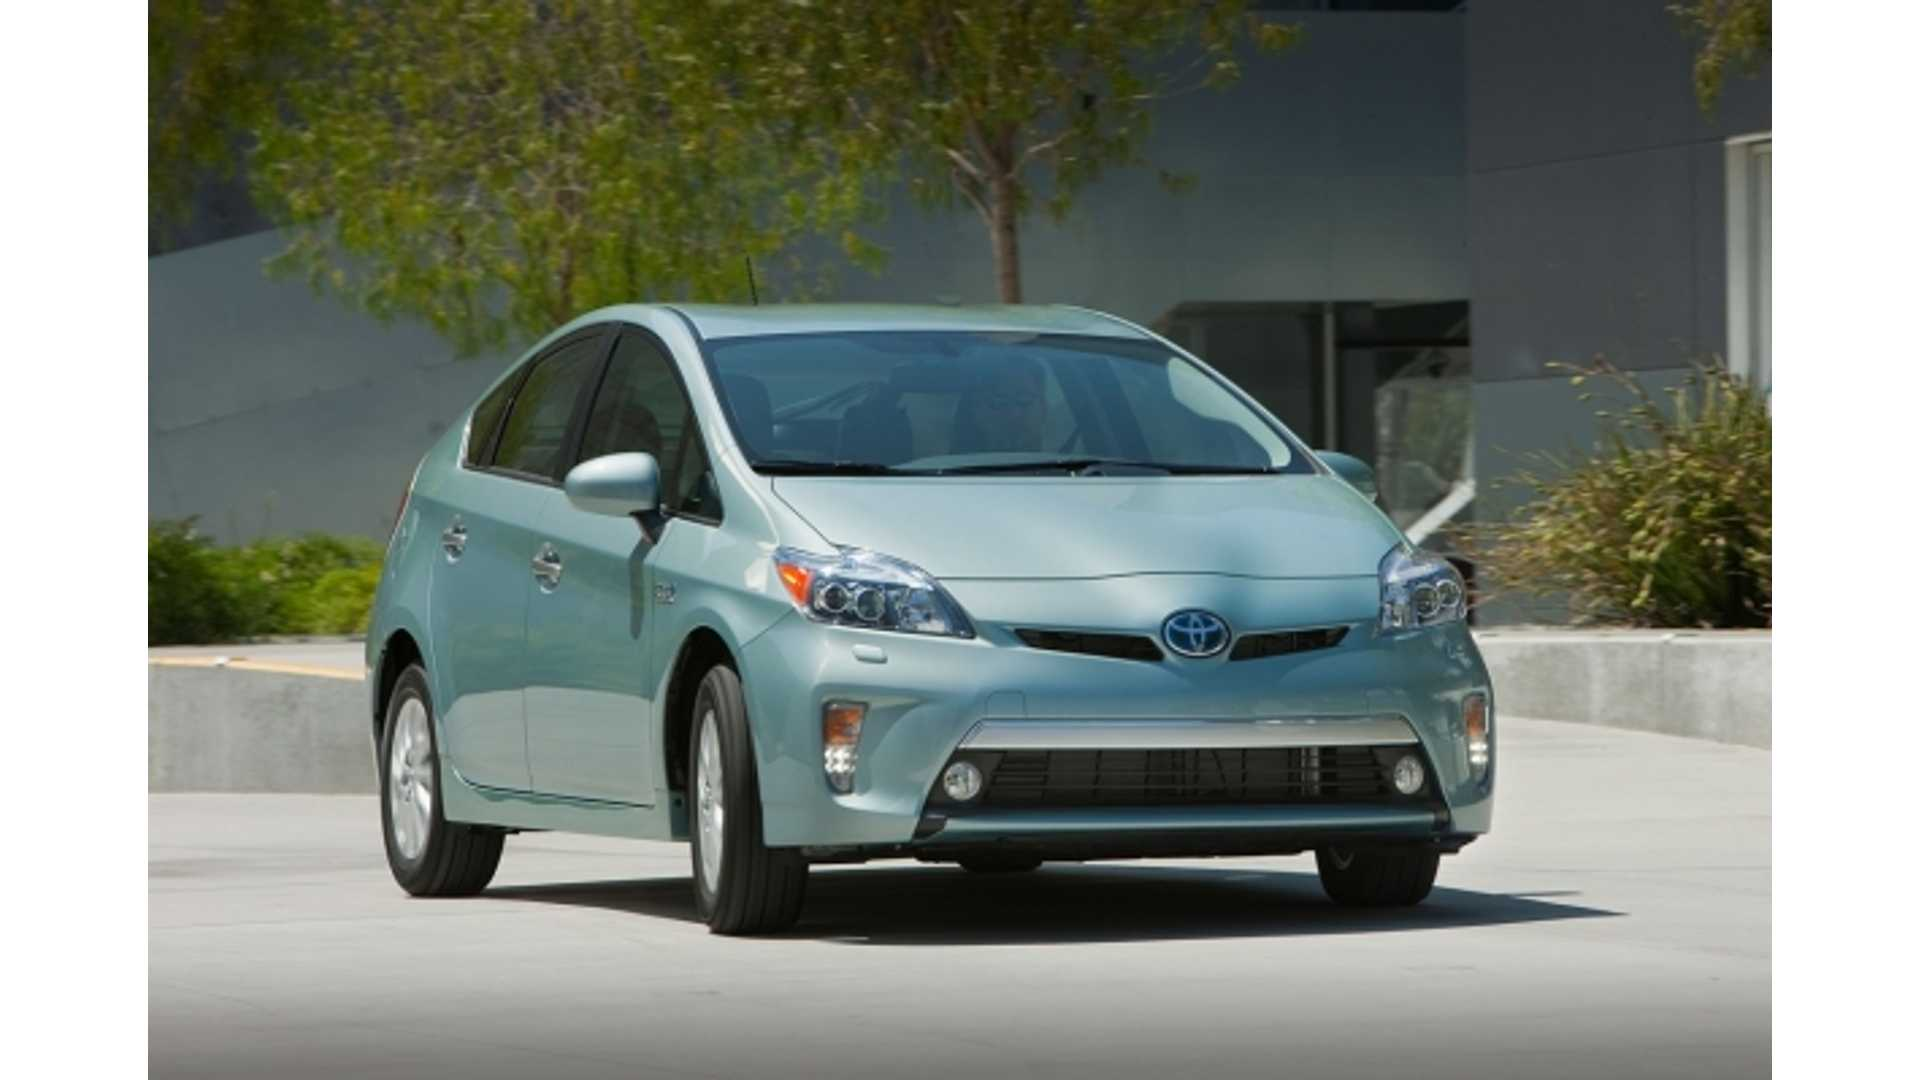 Next Gen Toyota Prius Plug In Hybrid To Get More Electric Range 55 Mpg Combined And Wireless Charging Capability